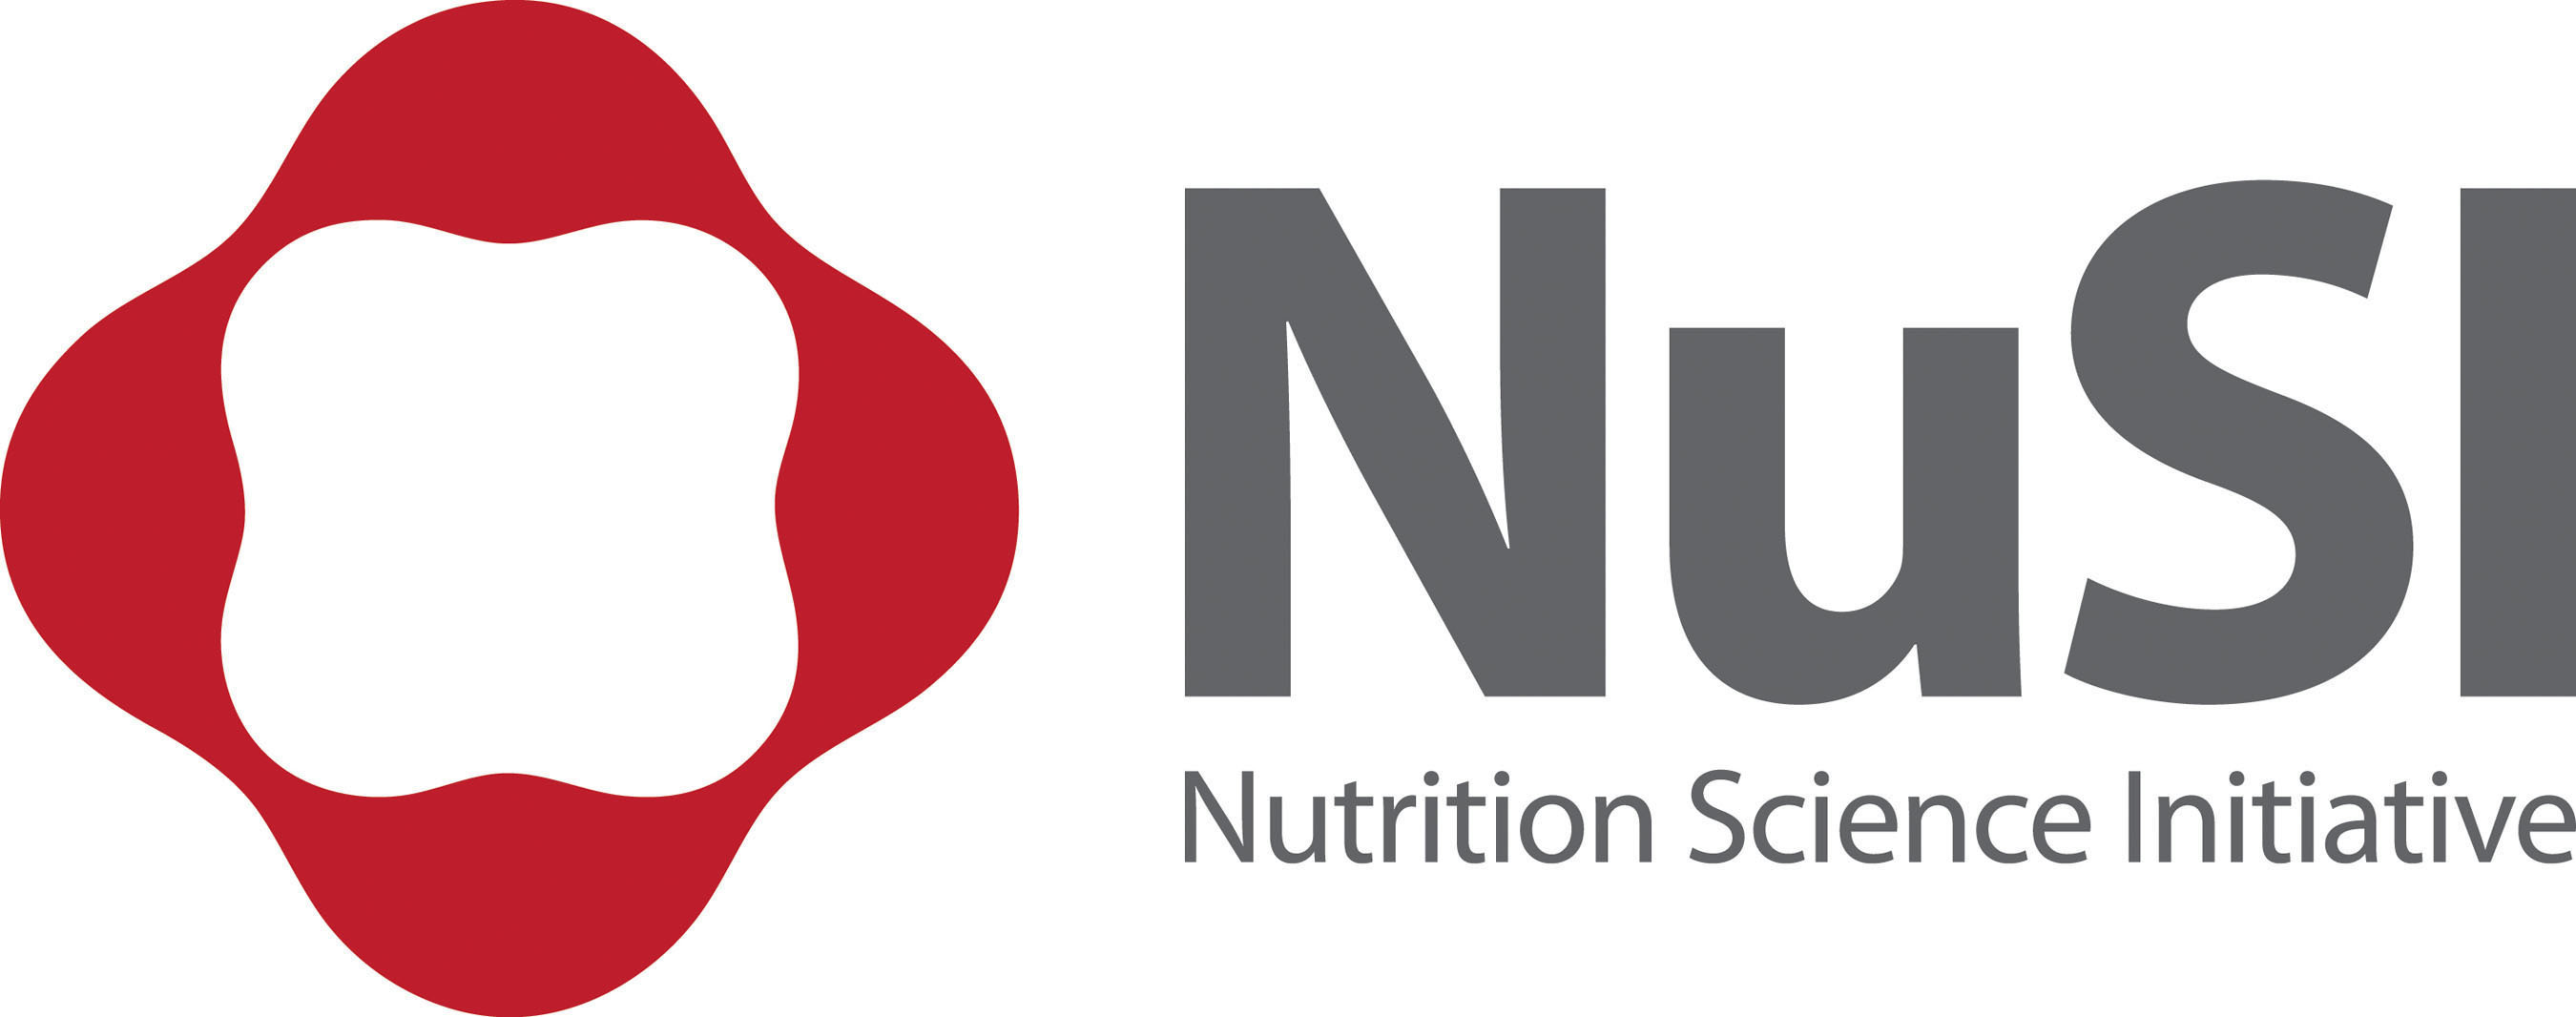 The Nutrition Science Initiative is a non profit organization committed to reducing the economic and social impact of obesity and obesity-related disease. For more information visit www.nusi.org.